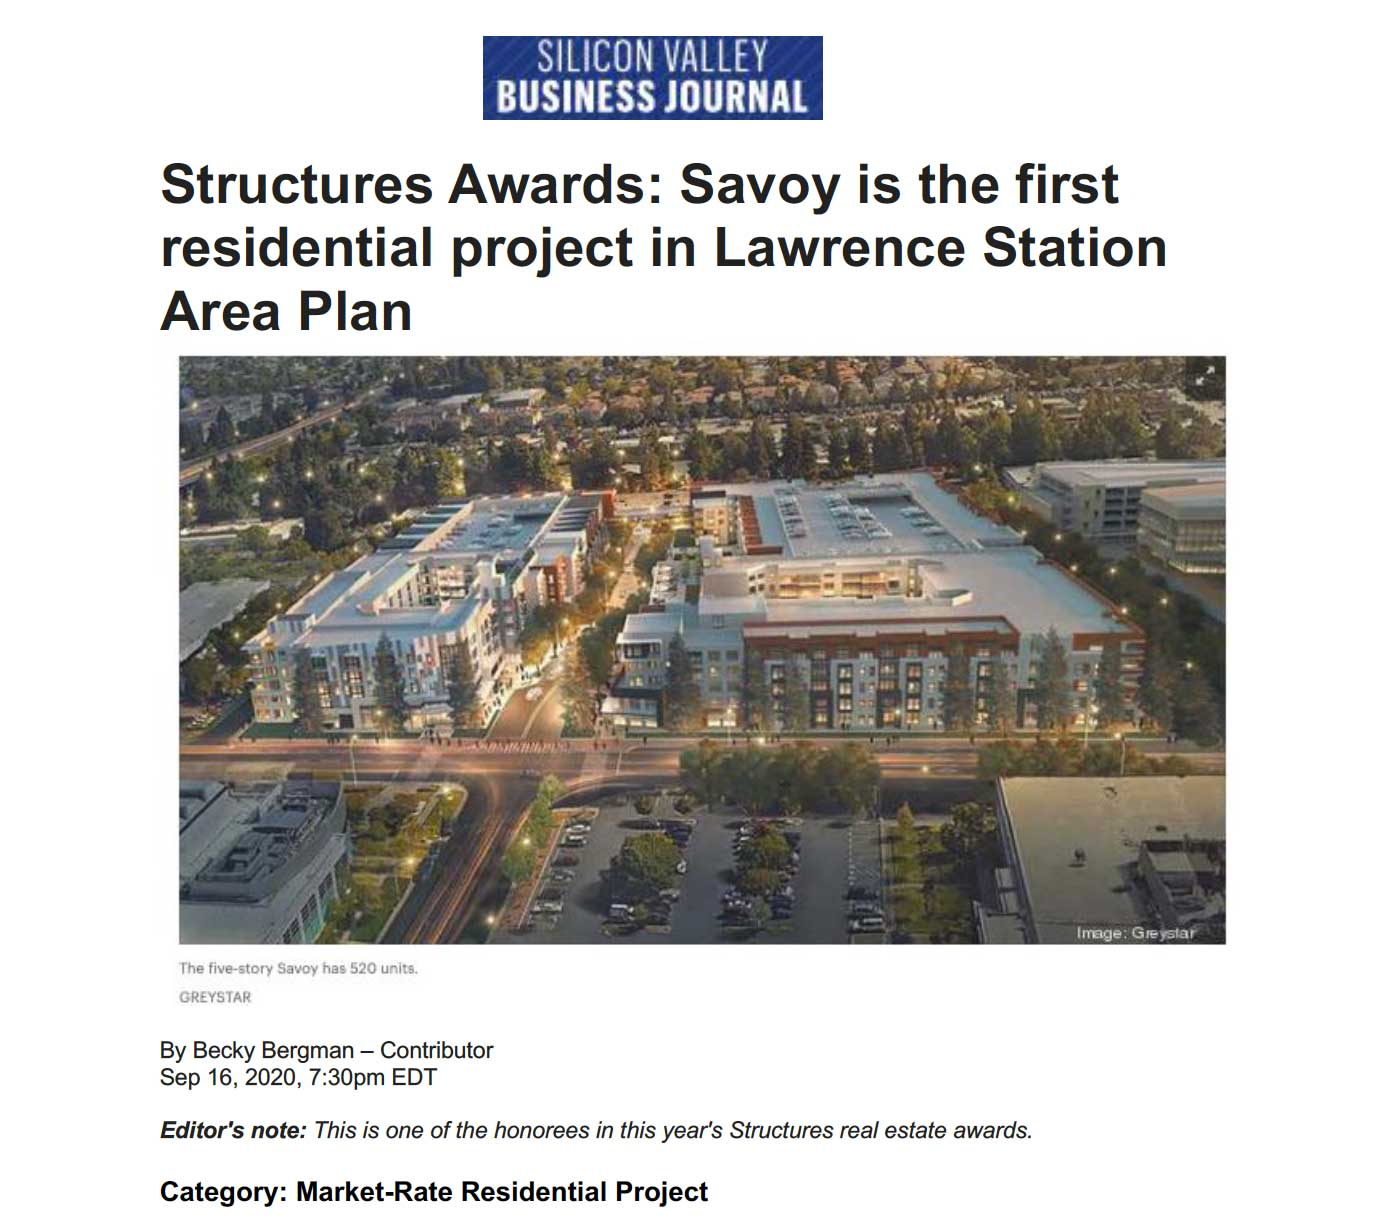 2020 Structures Awards: Savoy is the first residential project in Lawrence Station Area Plan